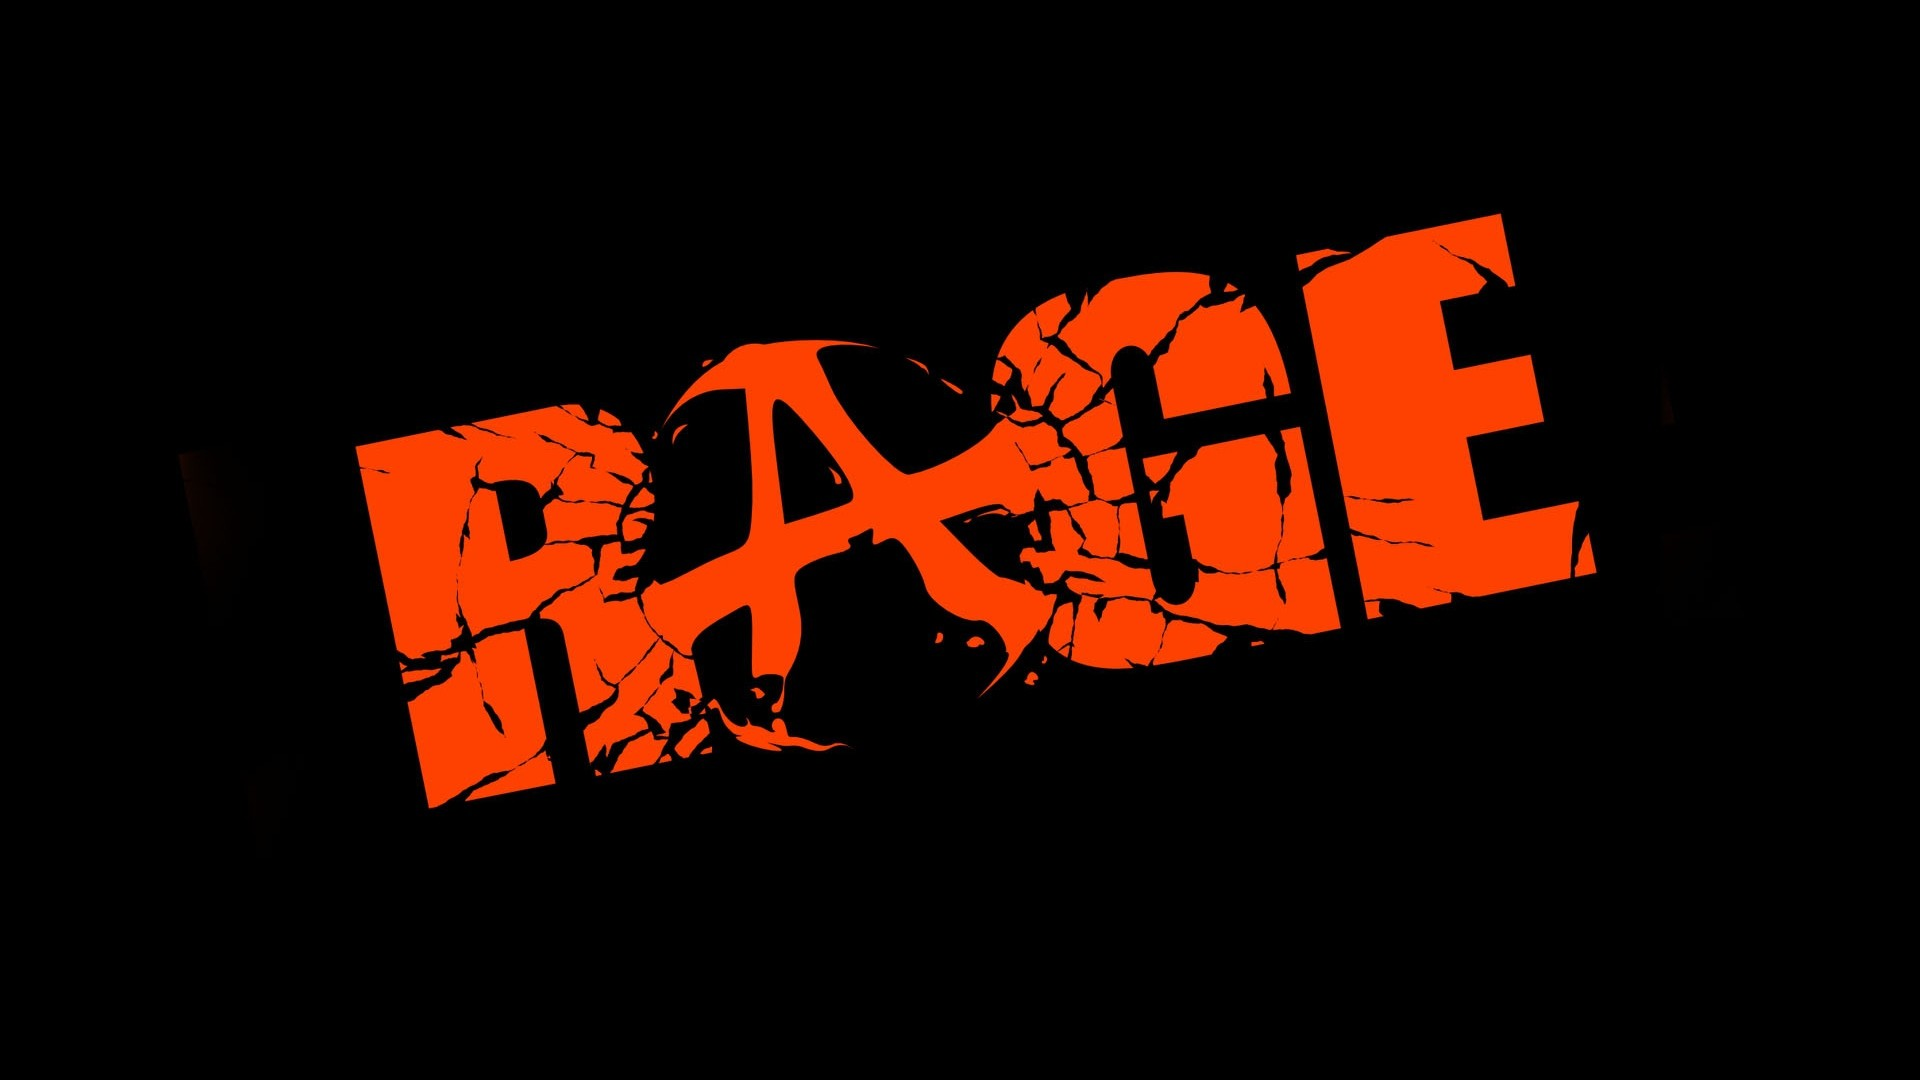 Awesome Rage Font Name Game Background Download Image Â« Pin HD Wallpapers